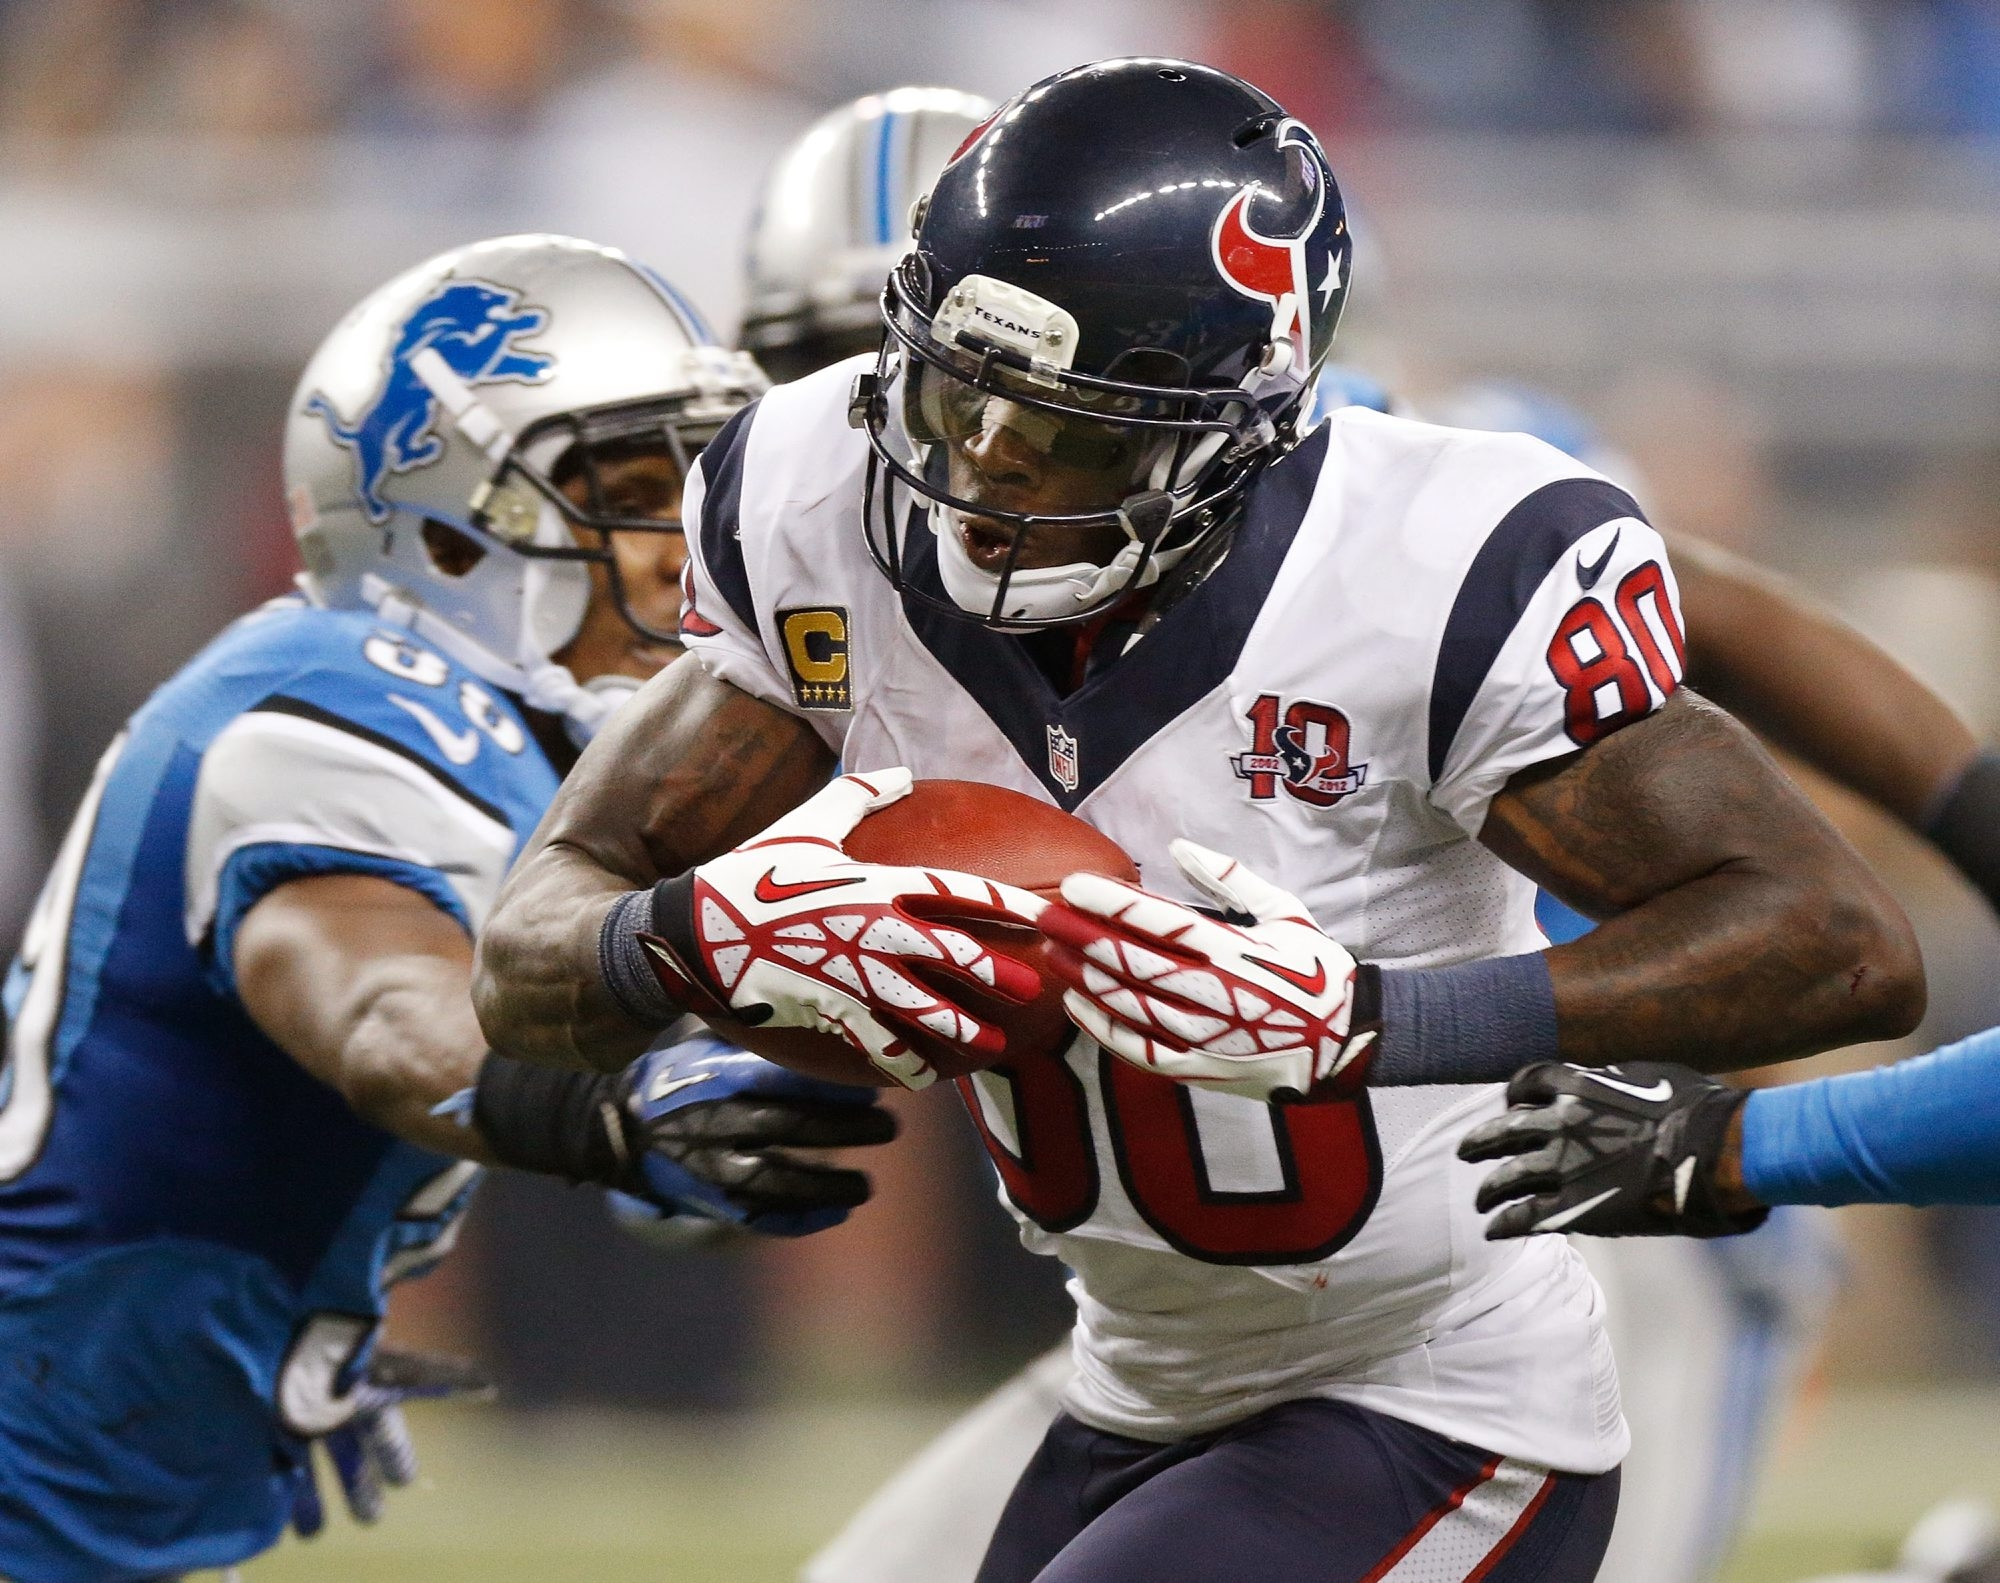 Andre Johnson and the Texans remained atop the rankings after a close call against Detroit.